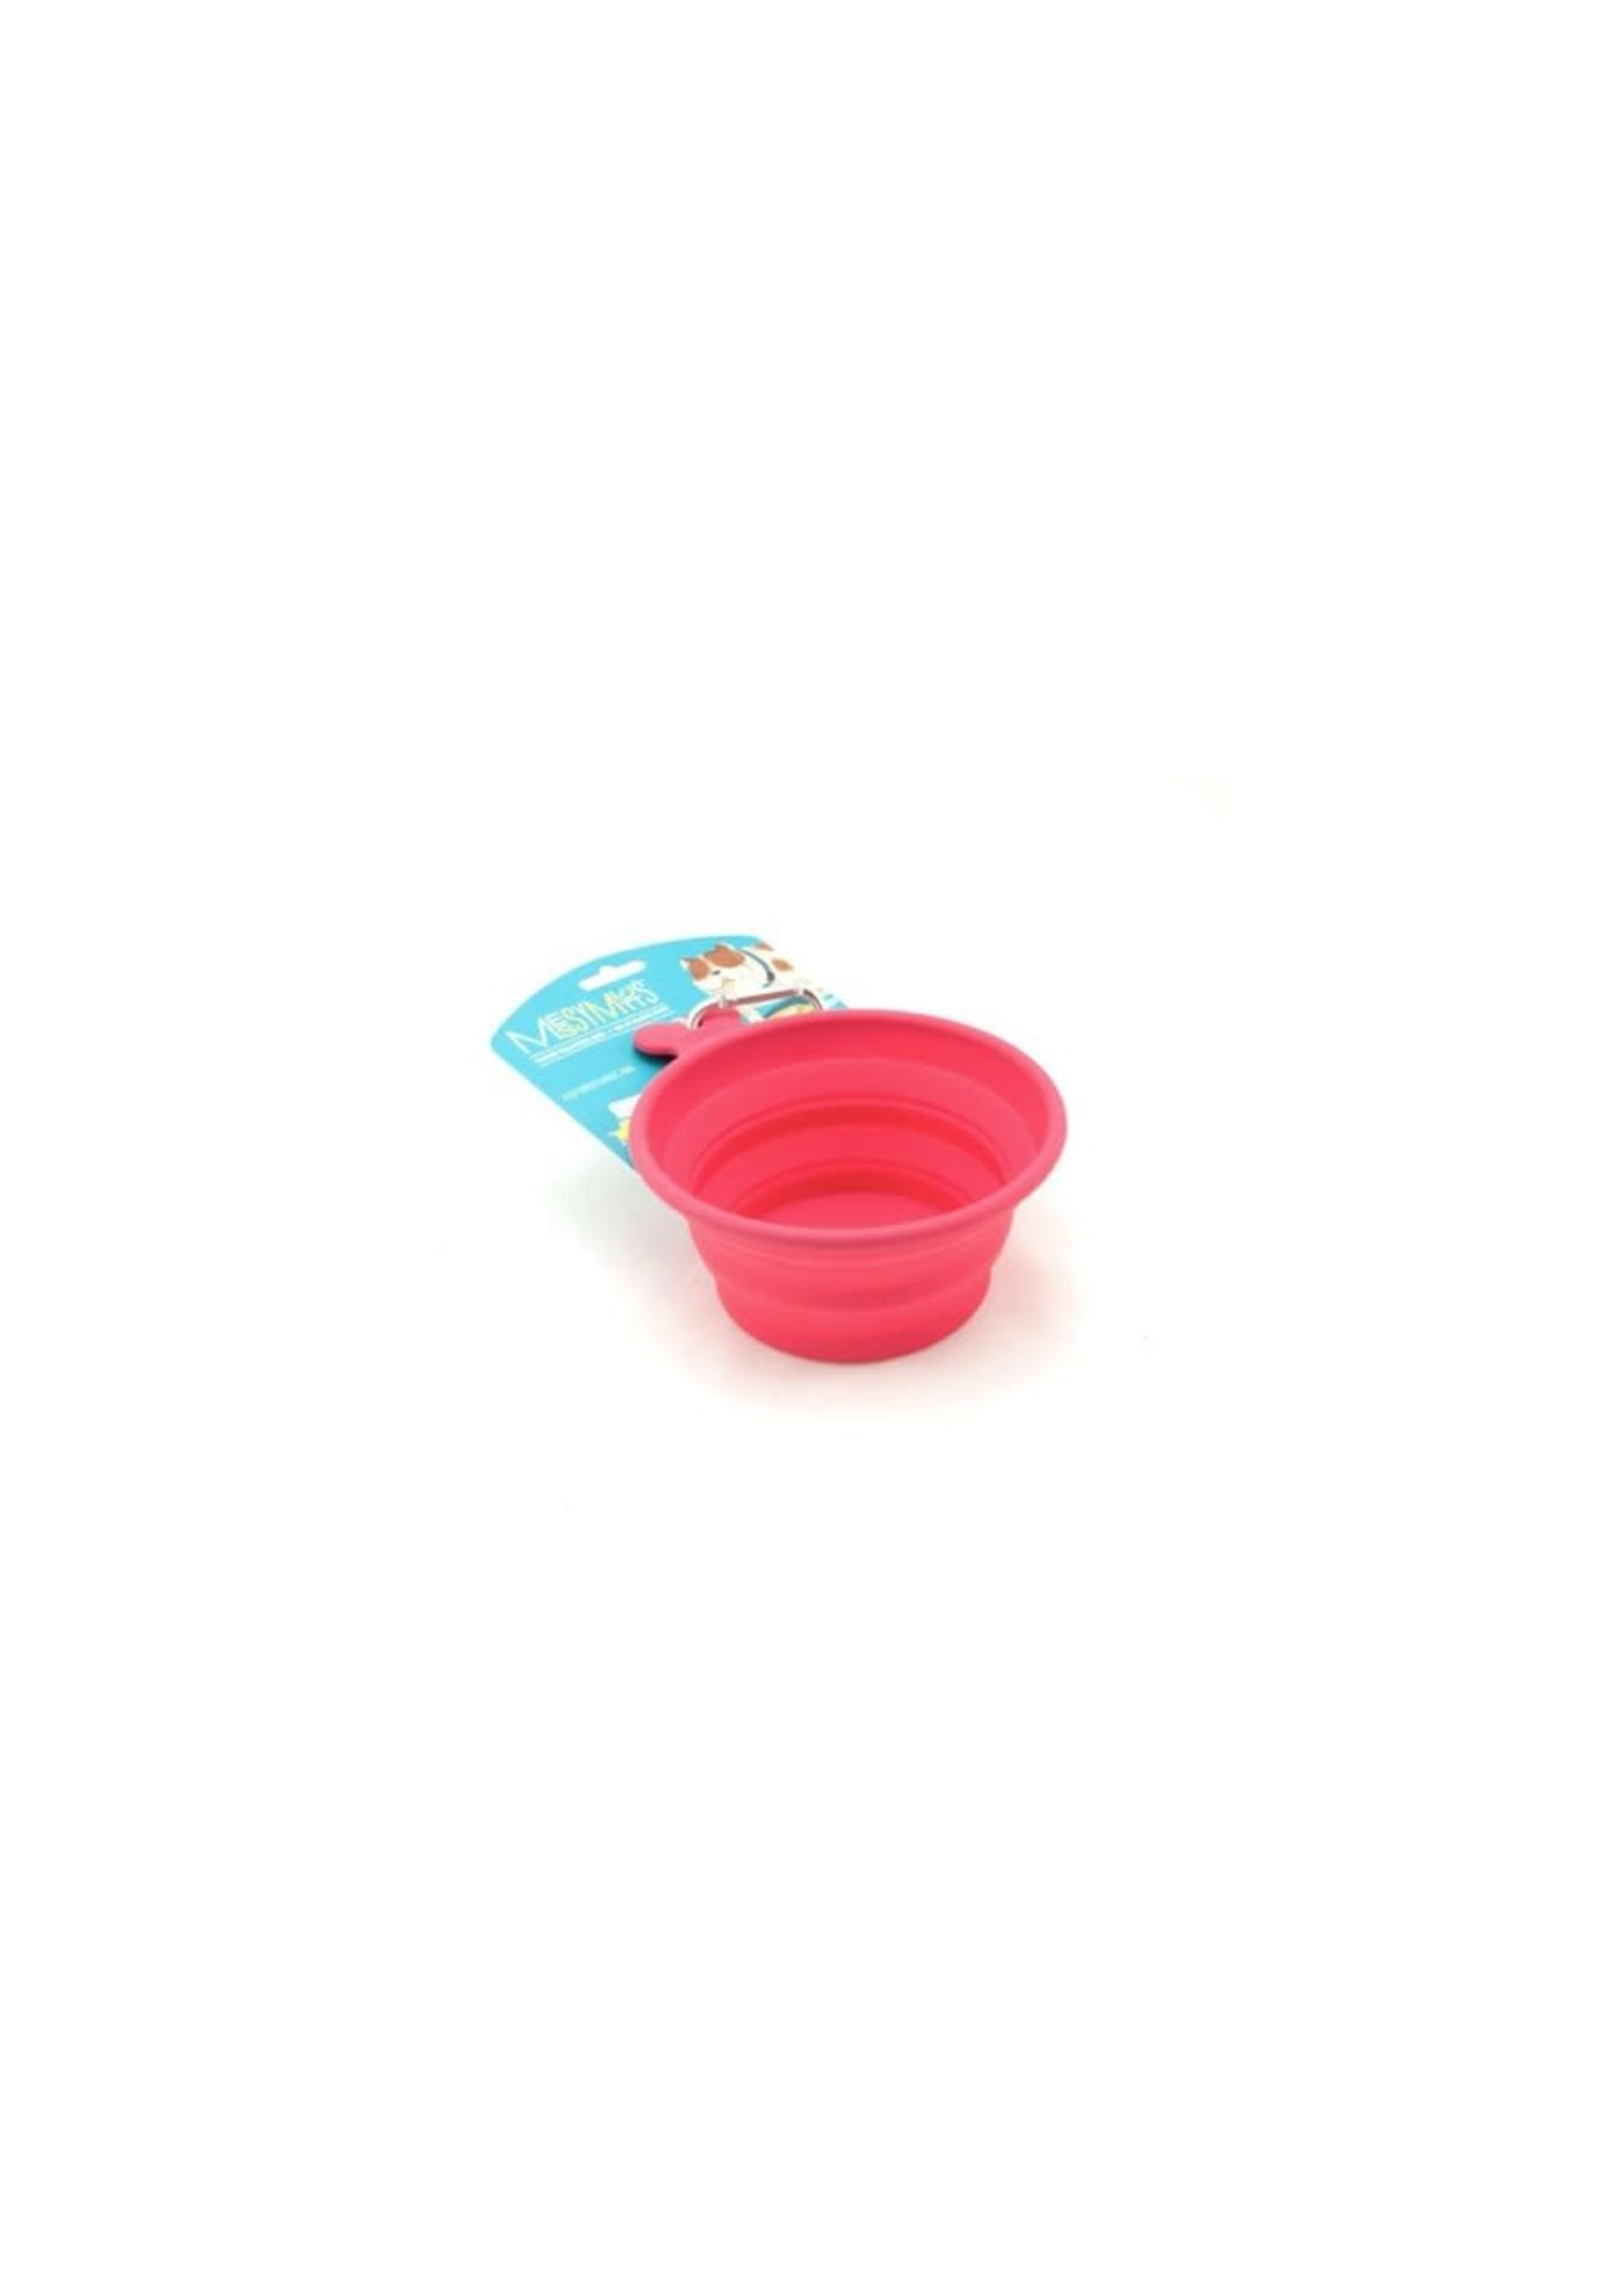 Messy Mutts Messy Mutts Bol en silicone rétractable -moyen, rouge